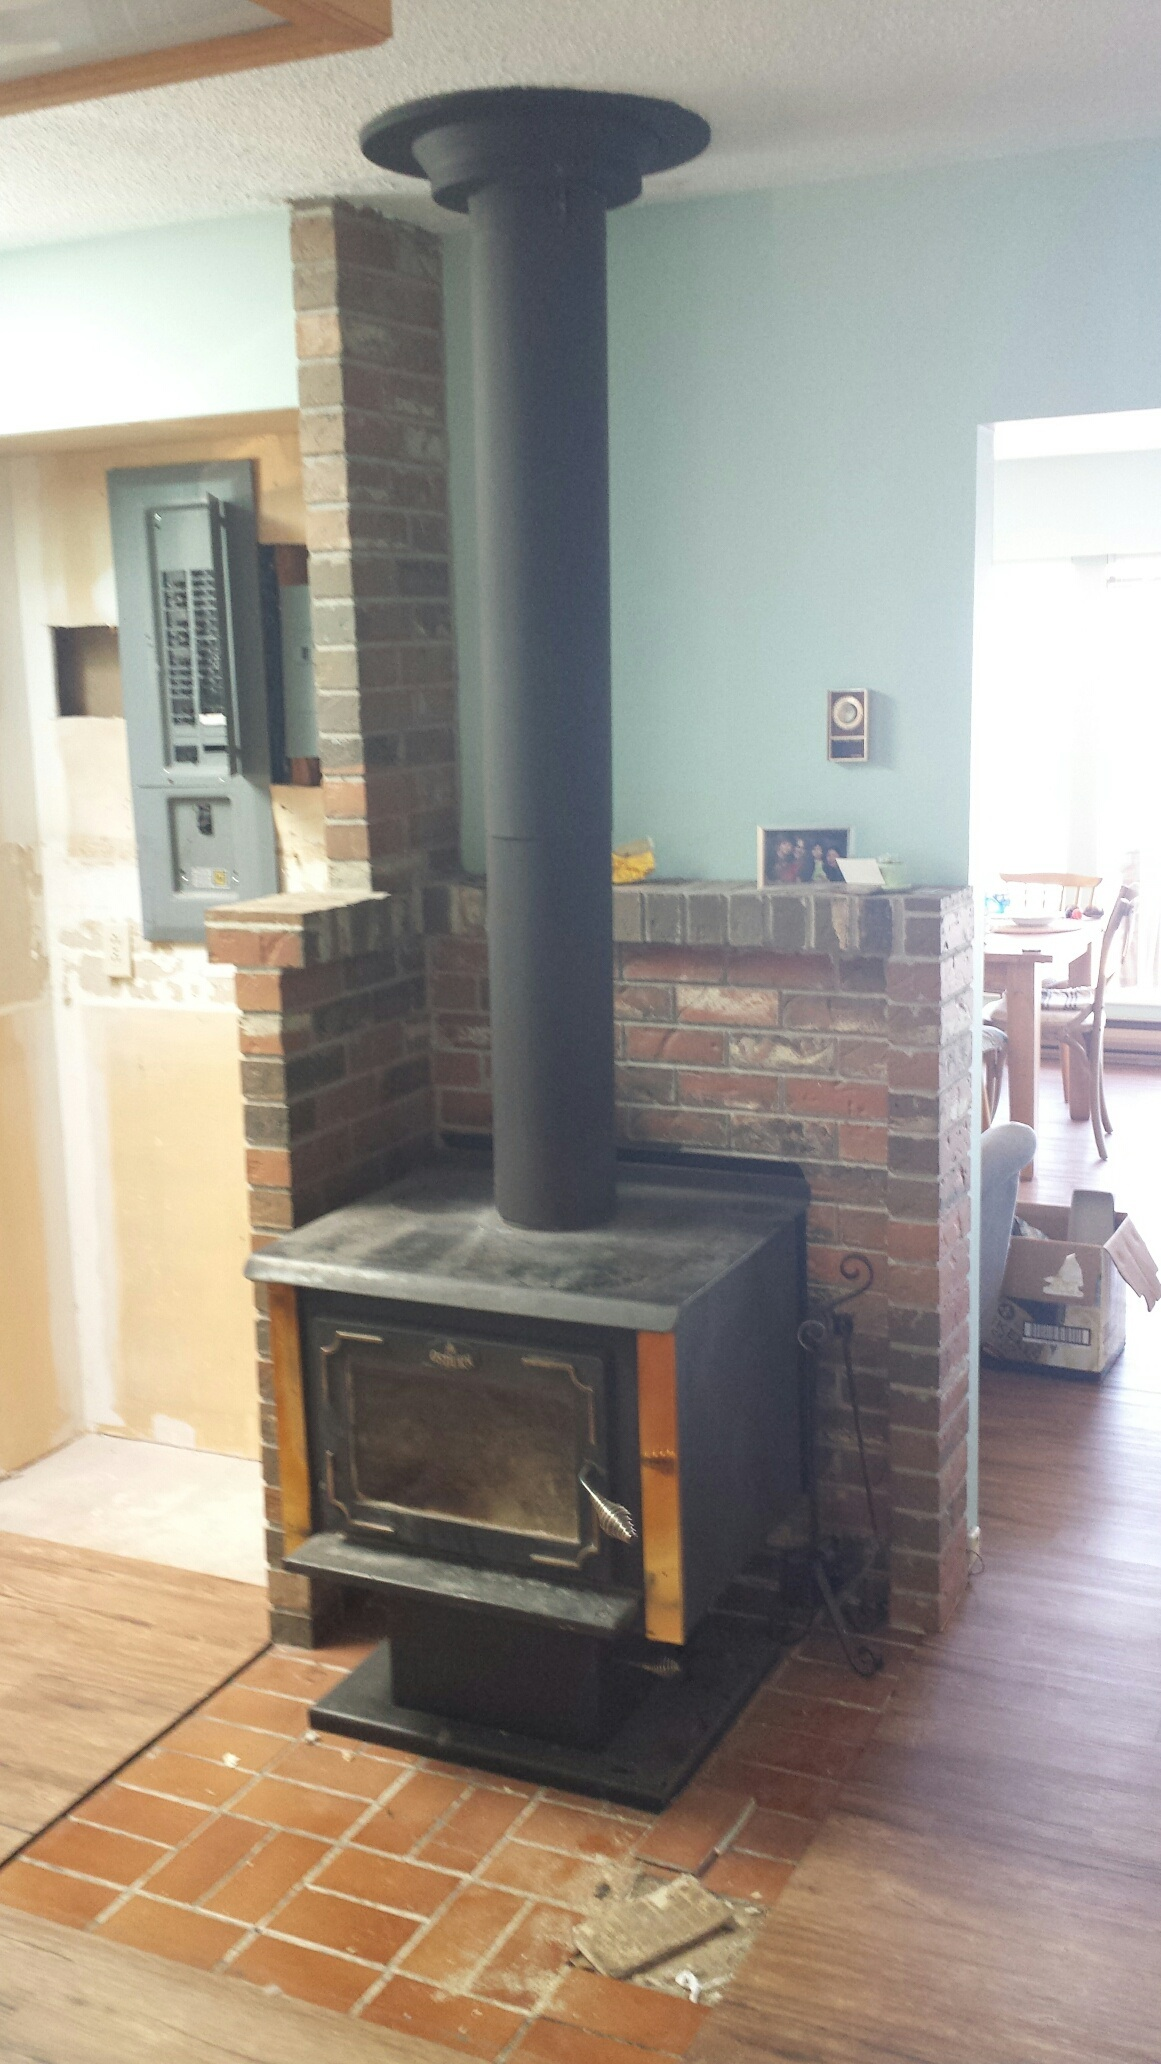 Wood stove heat shield reduces clearances by 66%